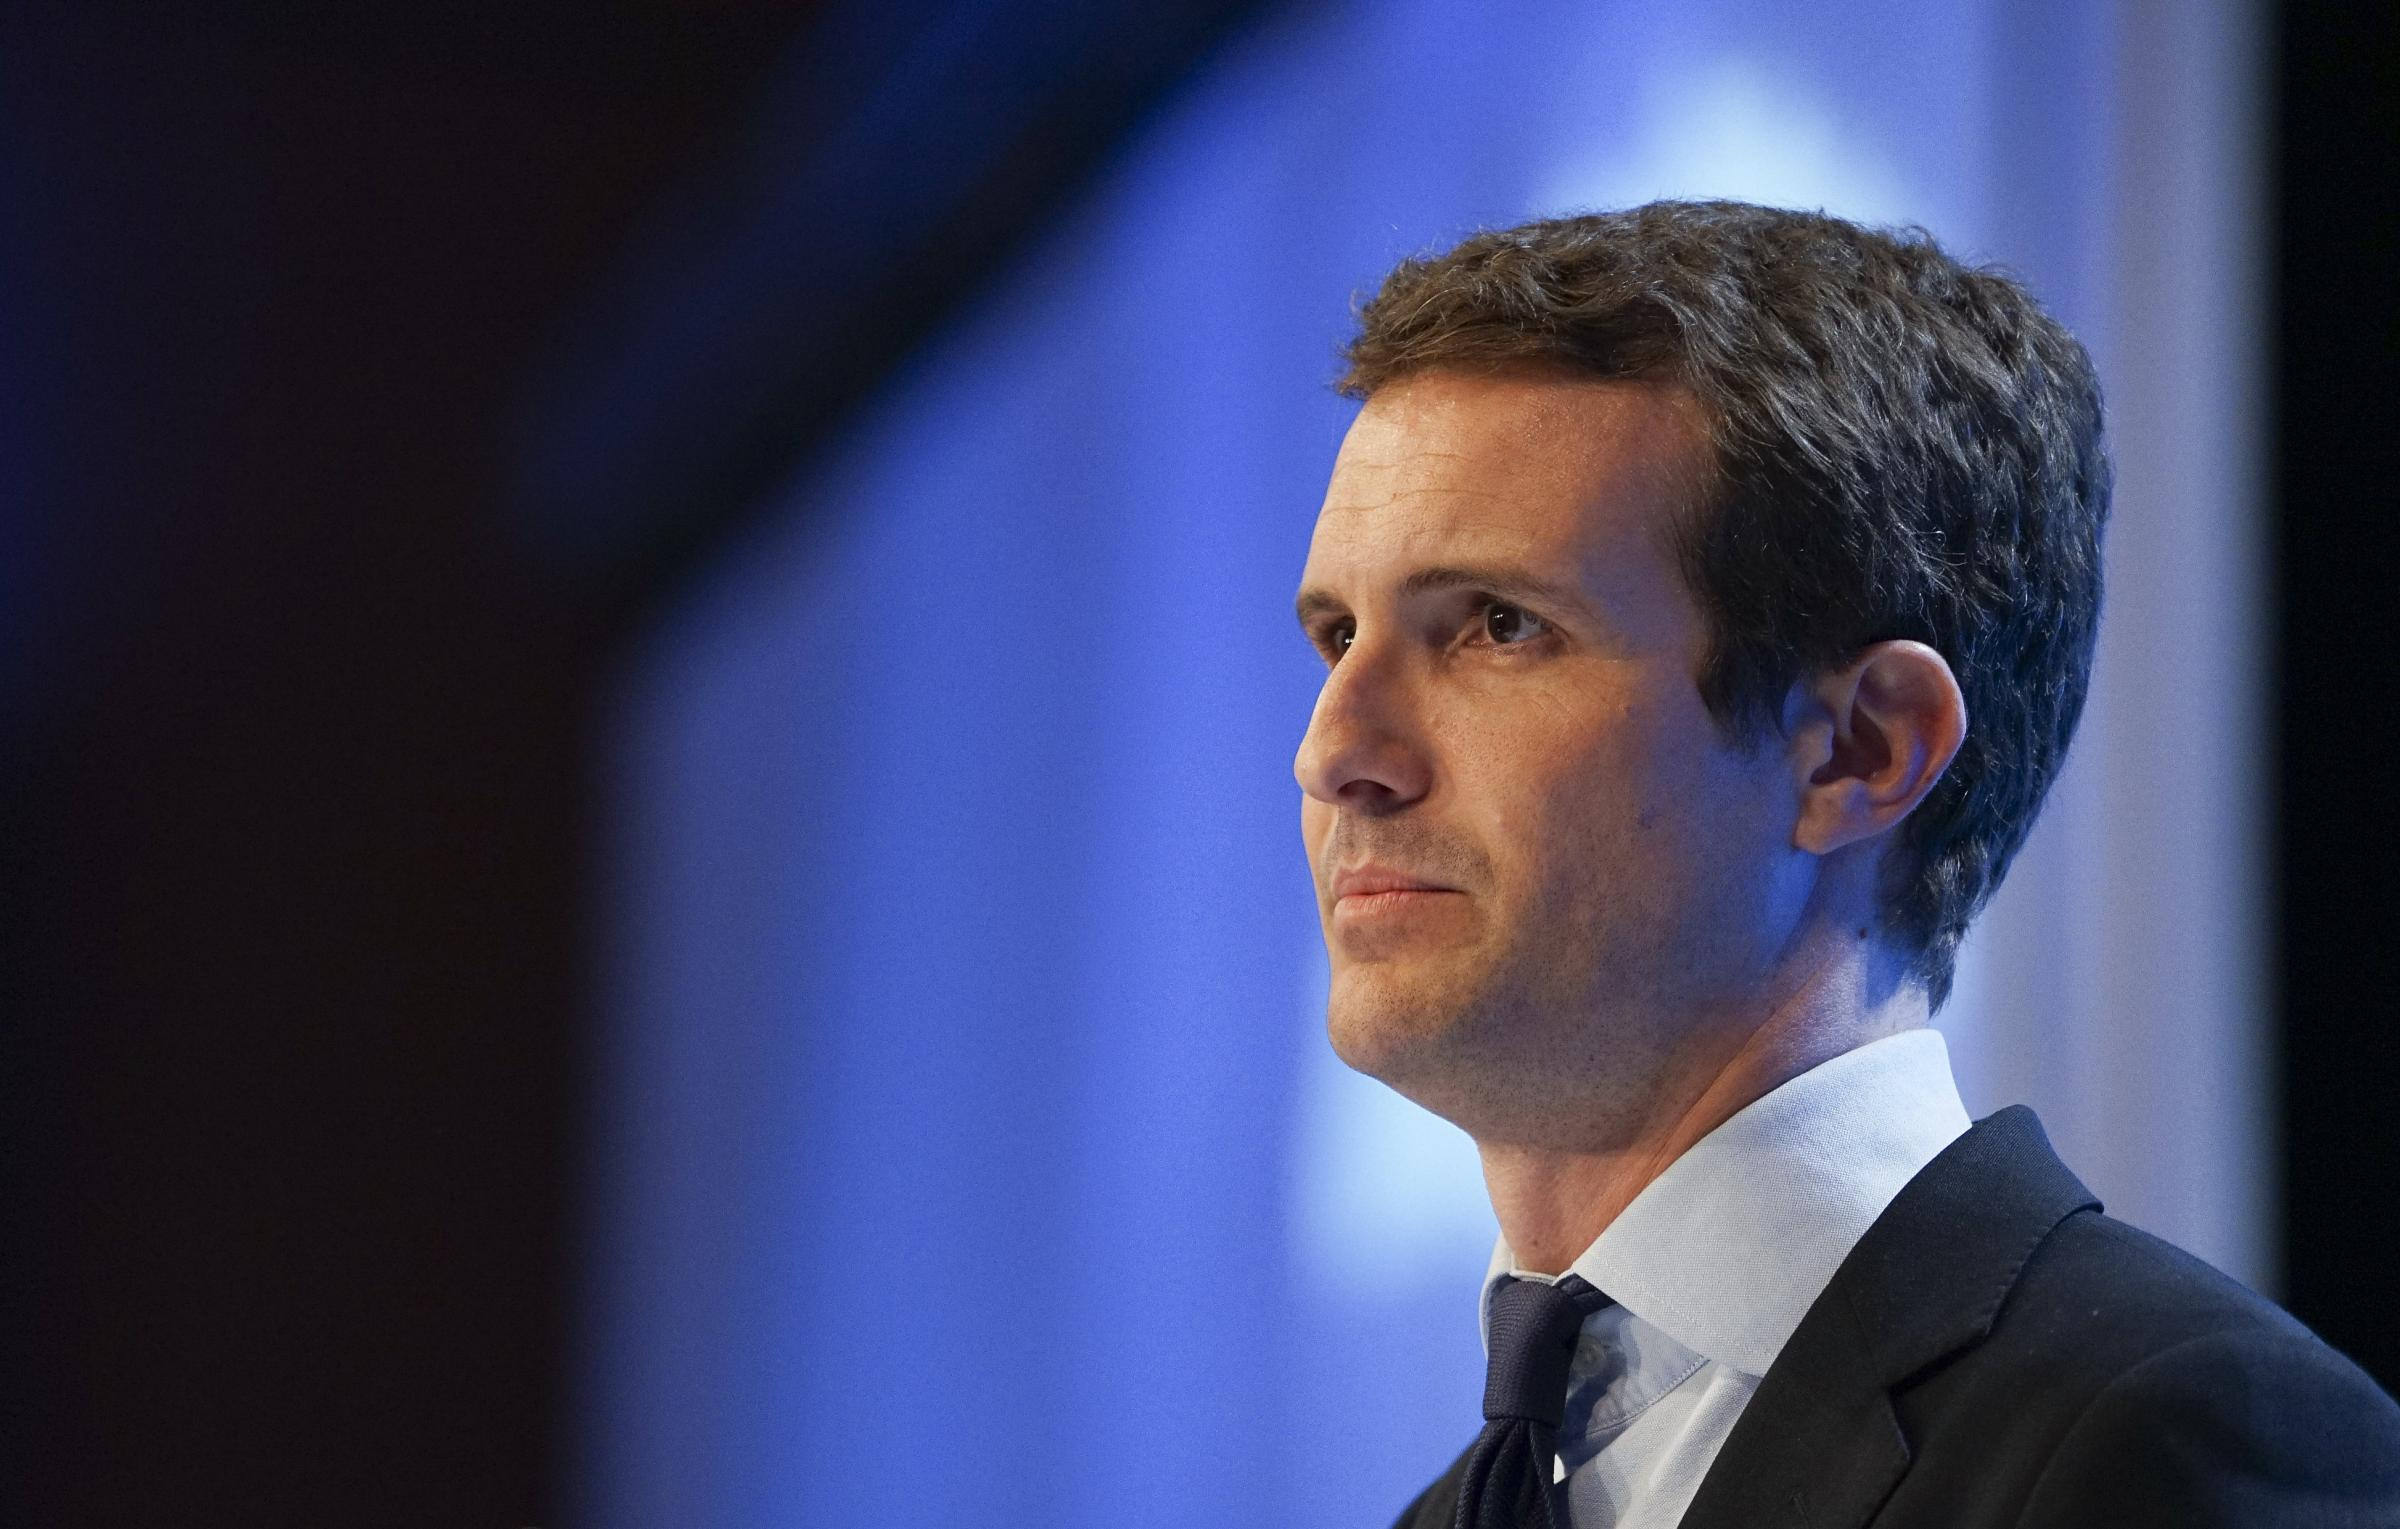 The university said it has no documentation of Pablo Casado submitting essays. Photograph: Getty